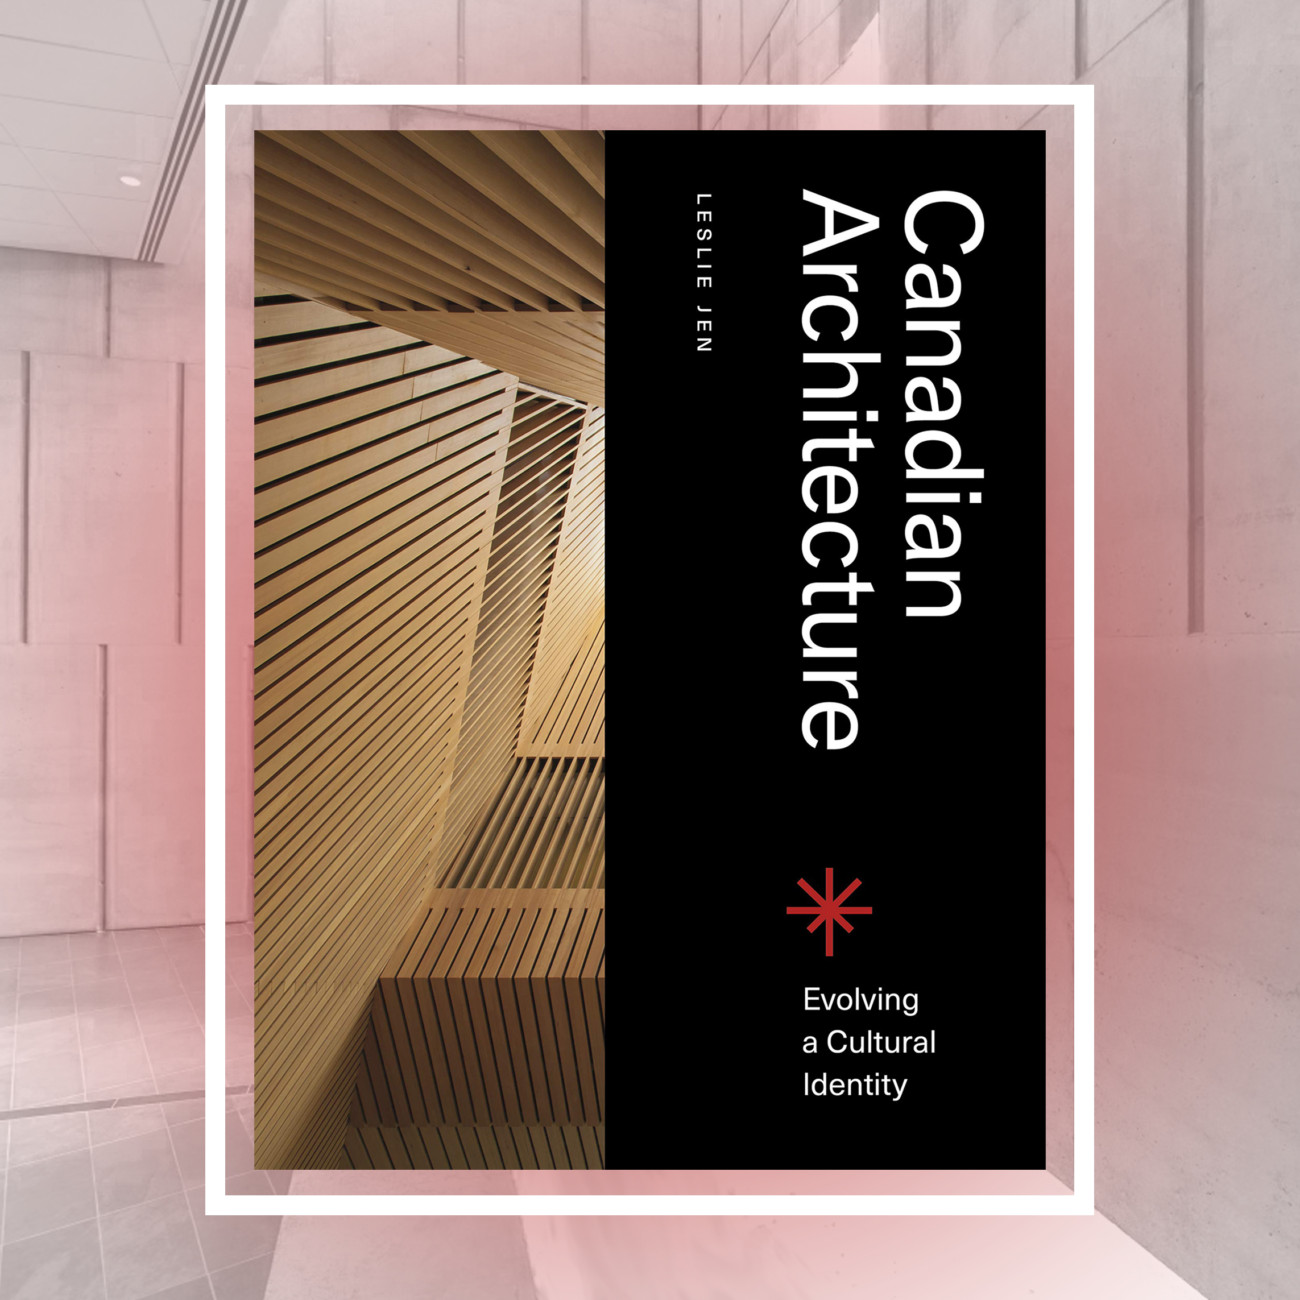 Canadian Architecture: Evolving a Cultural Identity